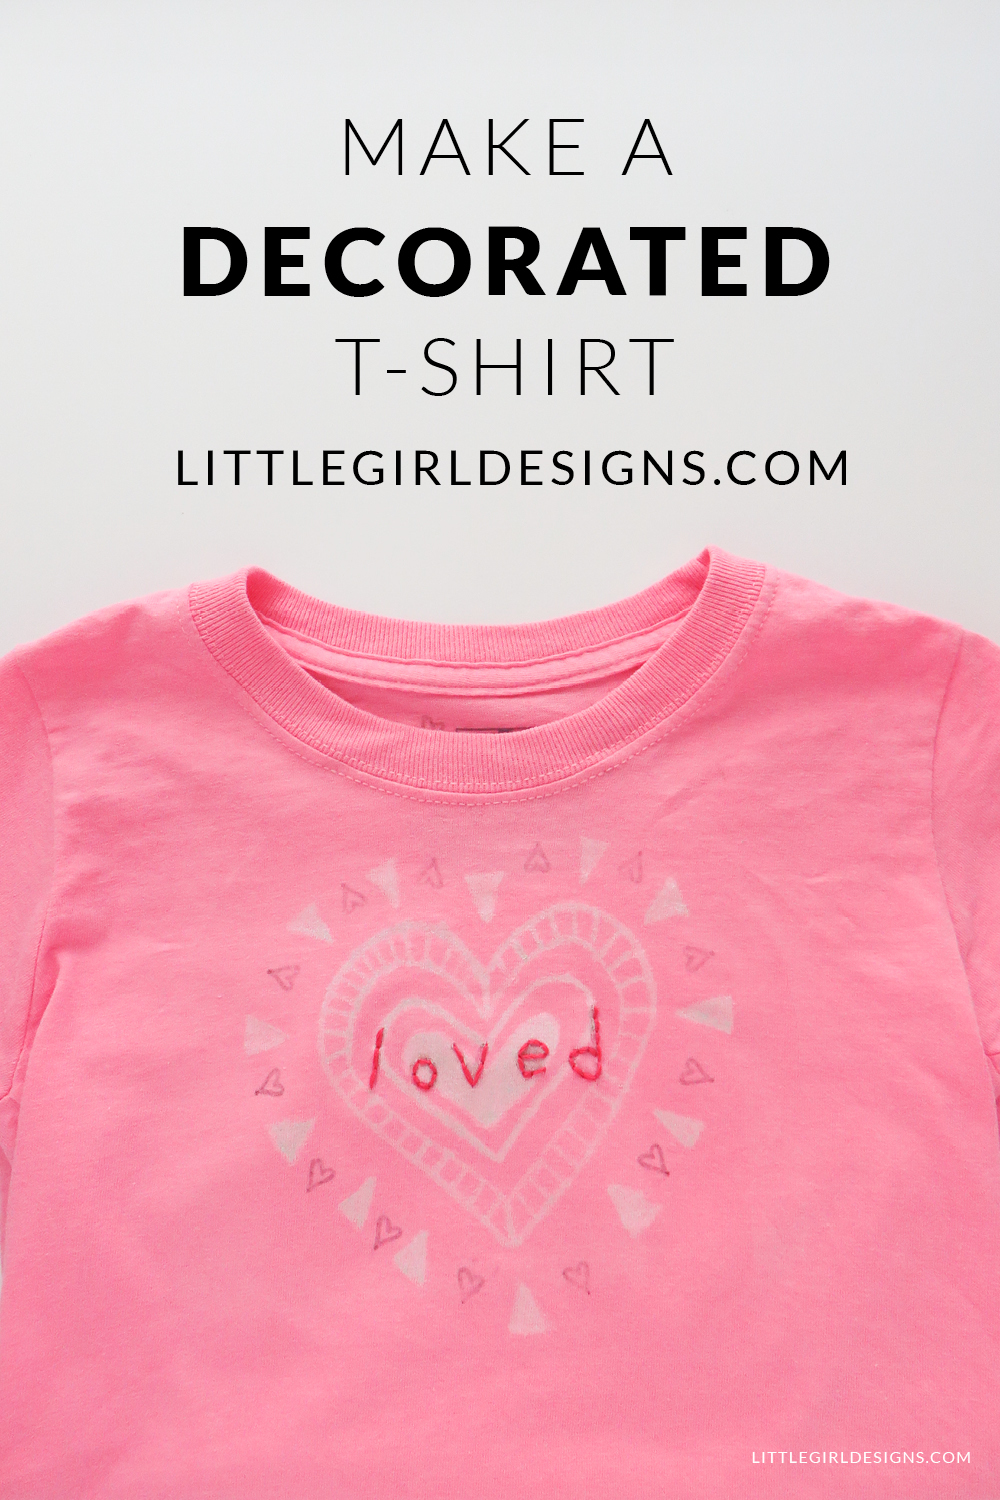 Make a Decorated T-shirt - Use a paint pen, iron-on transfer pen, and embroidery floss to create a one-of-a-kind t-shirt! @ littlegirldesigns.com